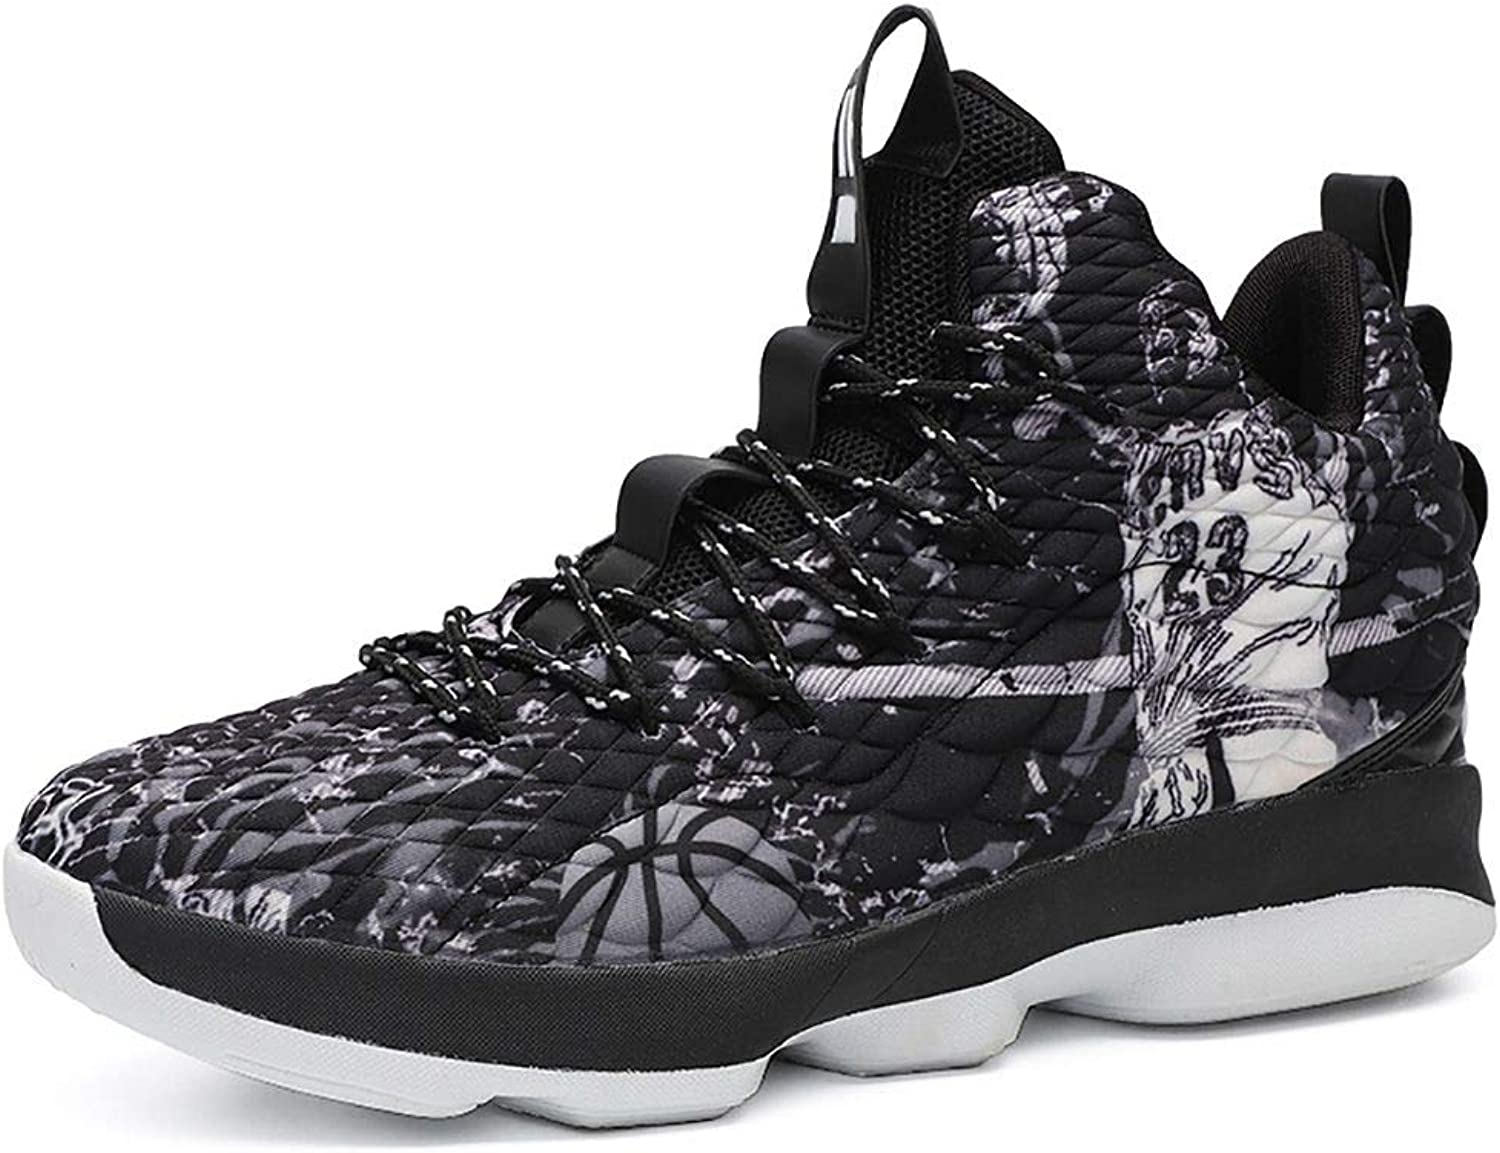 JiYe Mens Basketball shoes Sports Gym Slam Dunk shoes